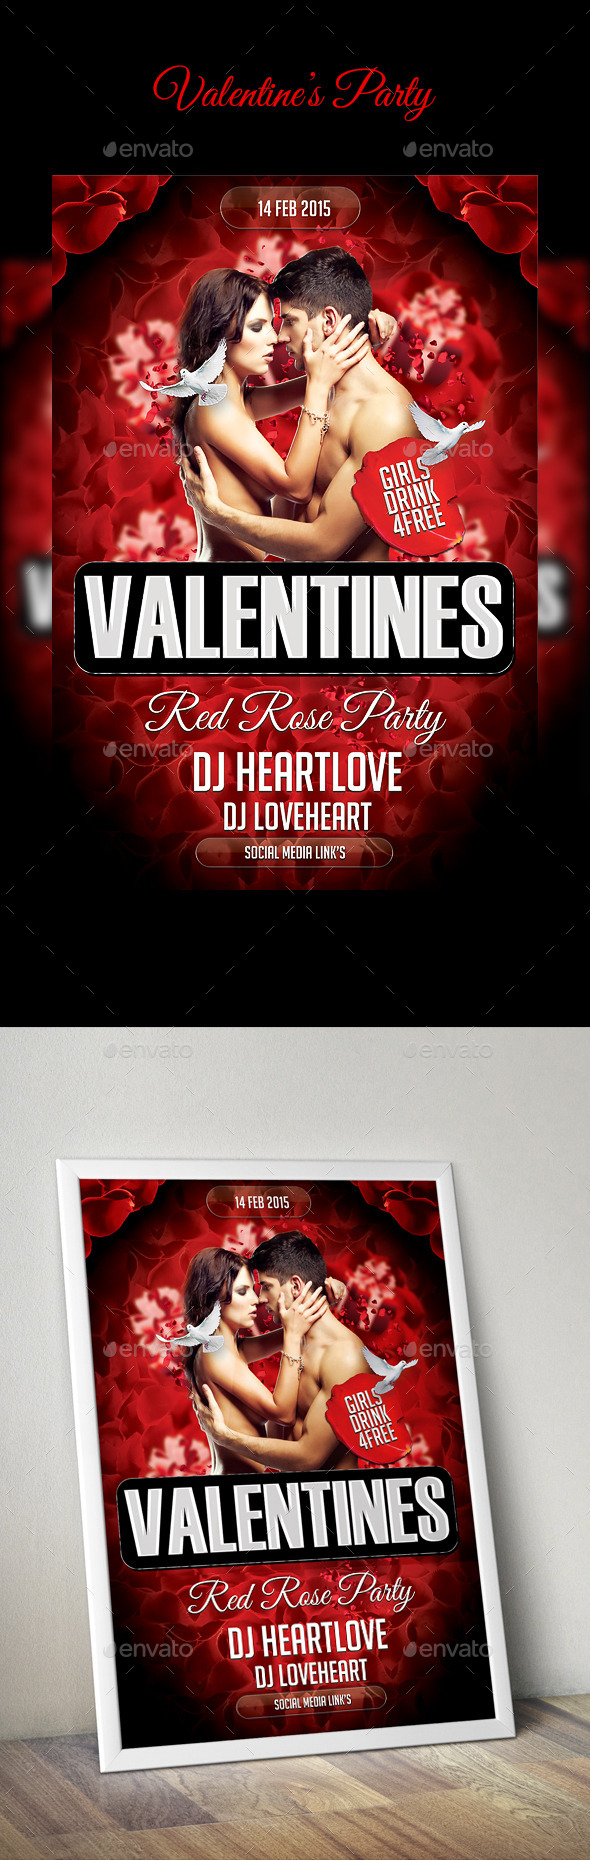 Valentine s Day flyer